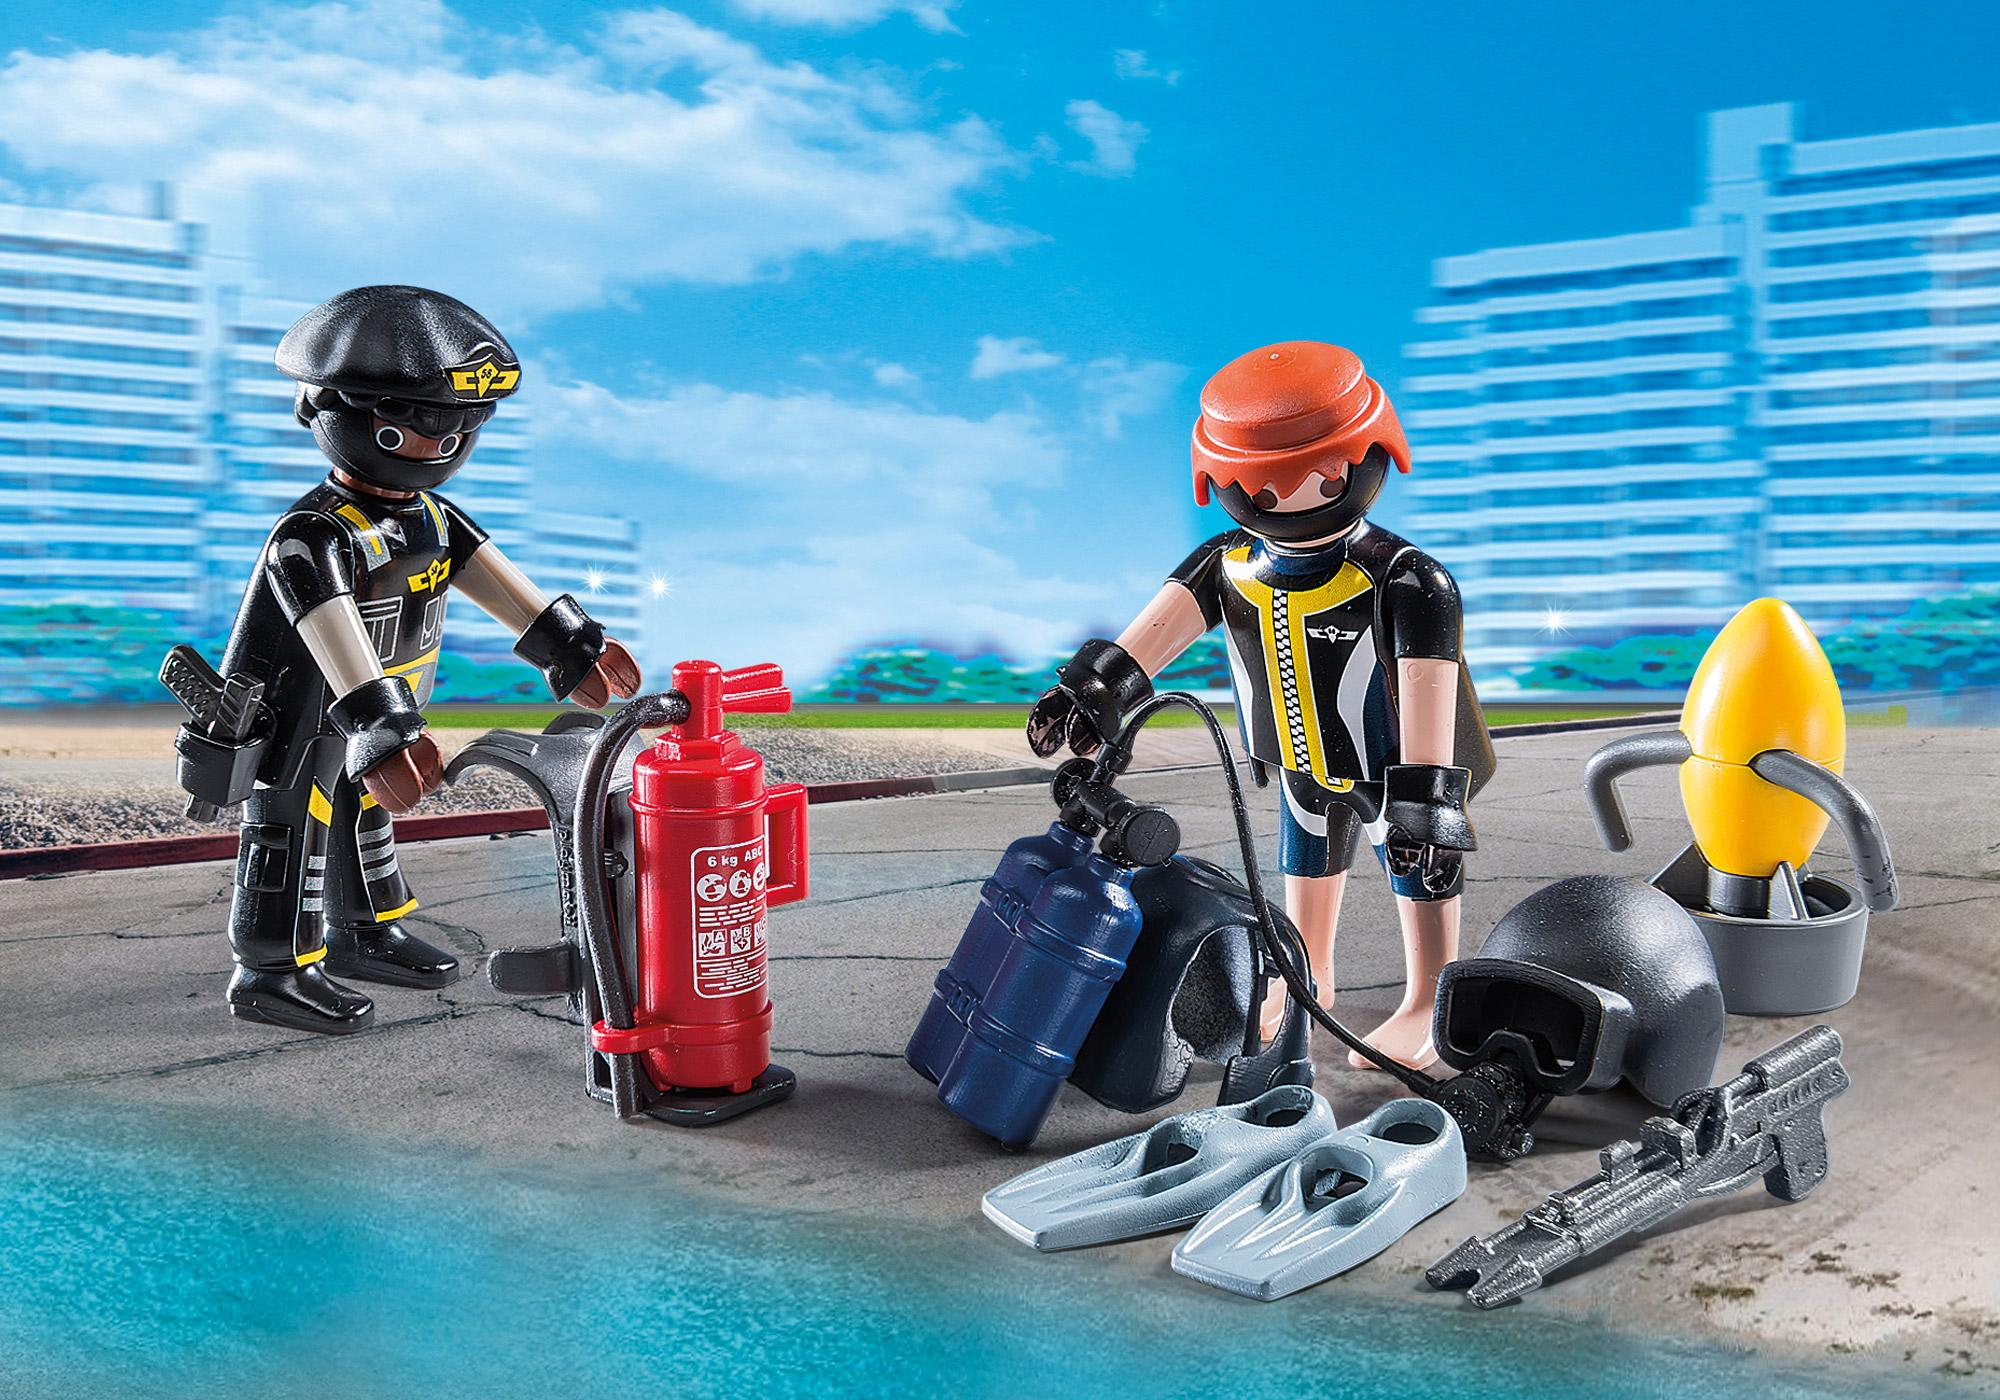 http://media.playmobil.com/i/playmobil/9365_product_extra1/SEK-team